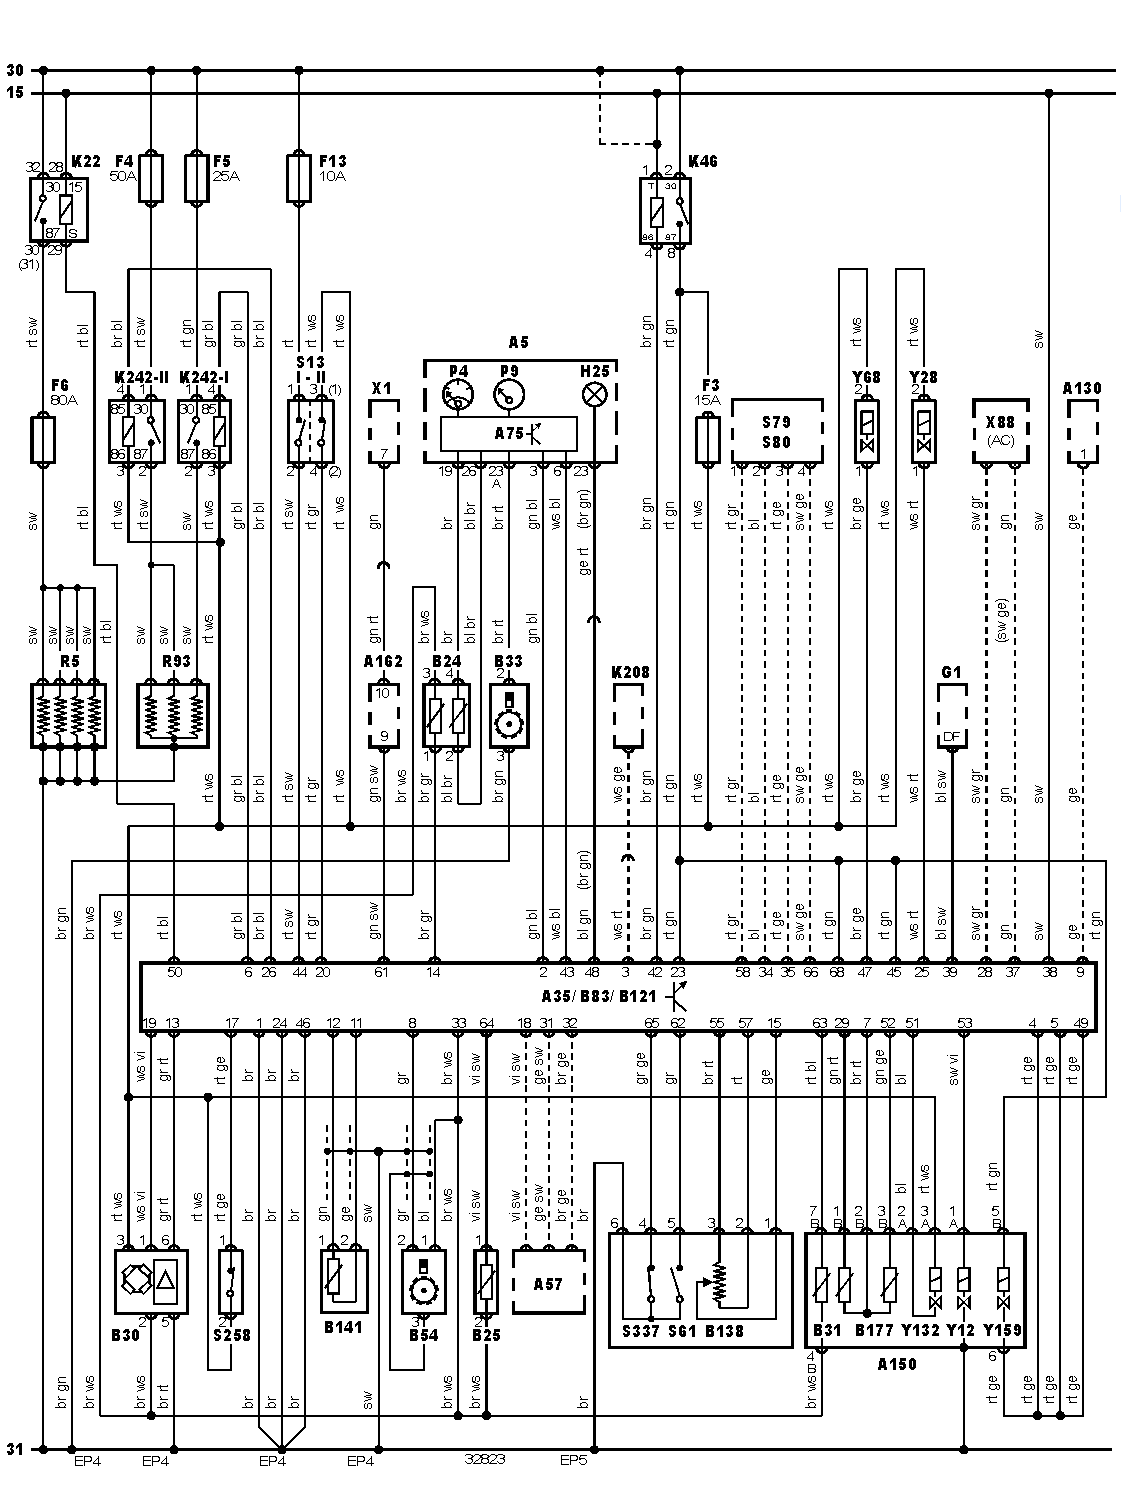 Topic2138167 on Vw Touareg Wiring Diagrams